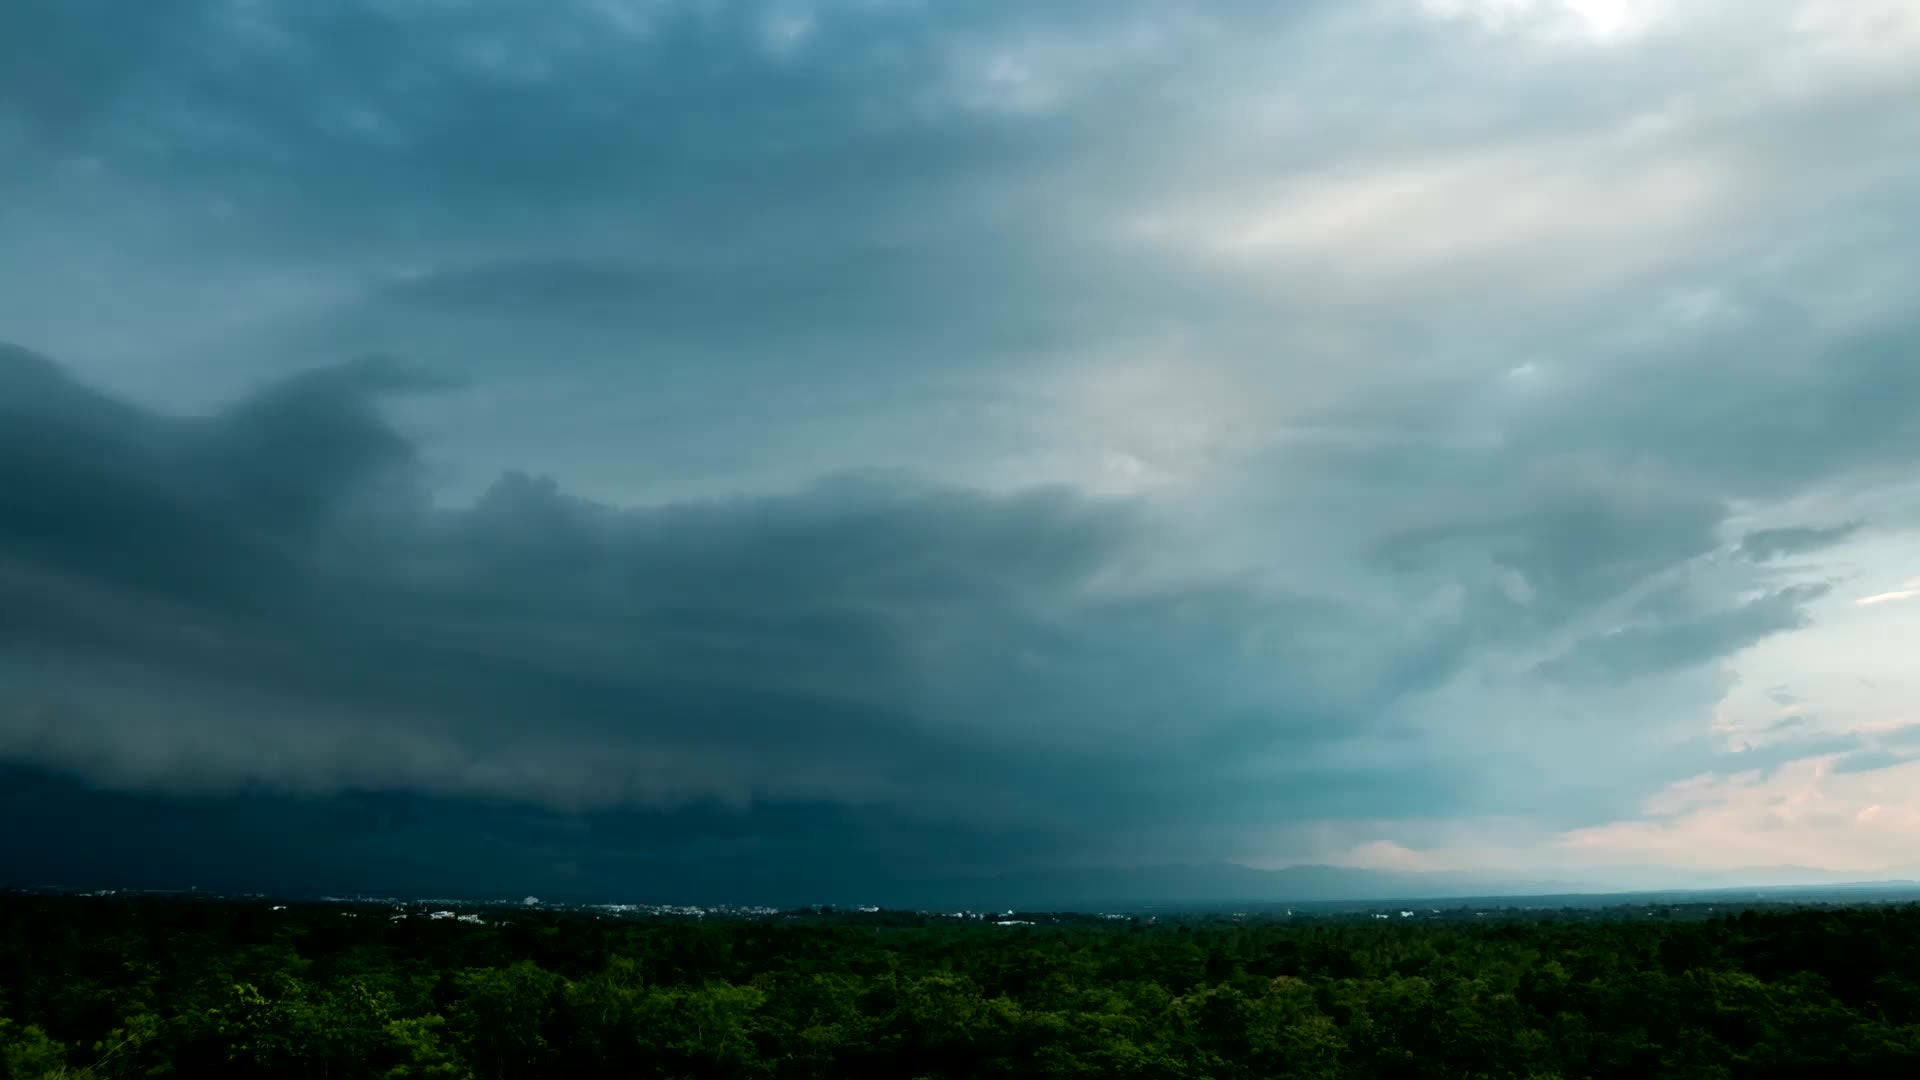 Allergies and Asthma Could Worsen During Thunderstorms